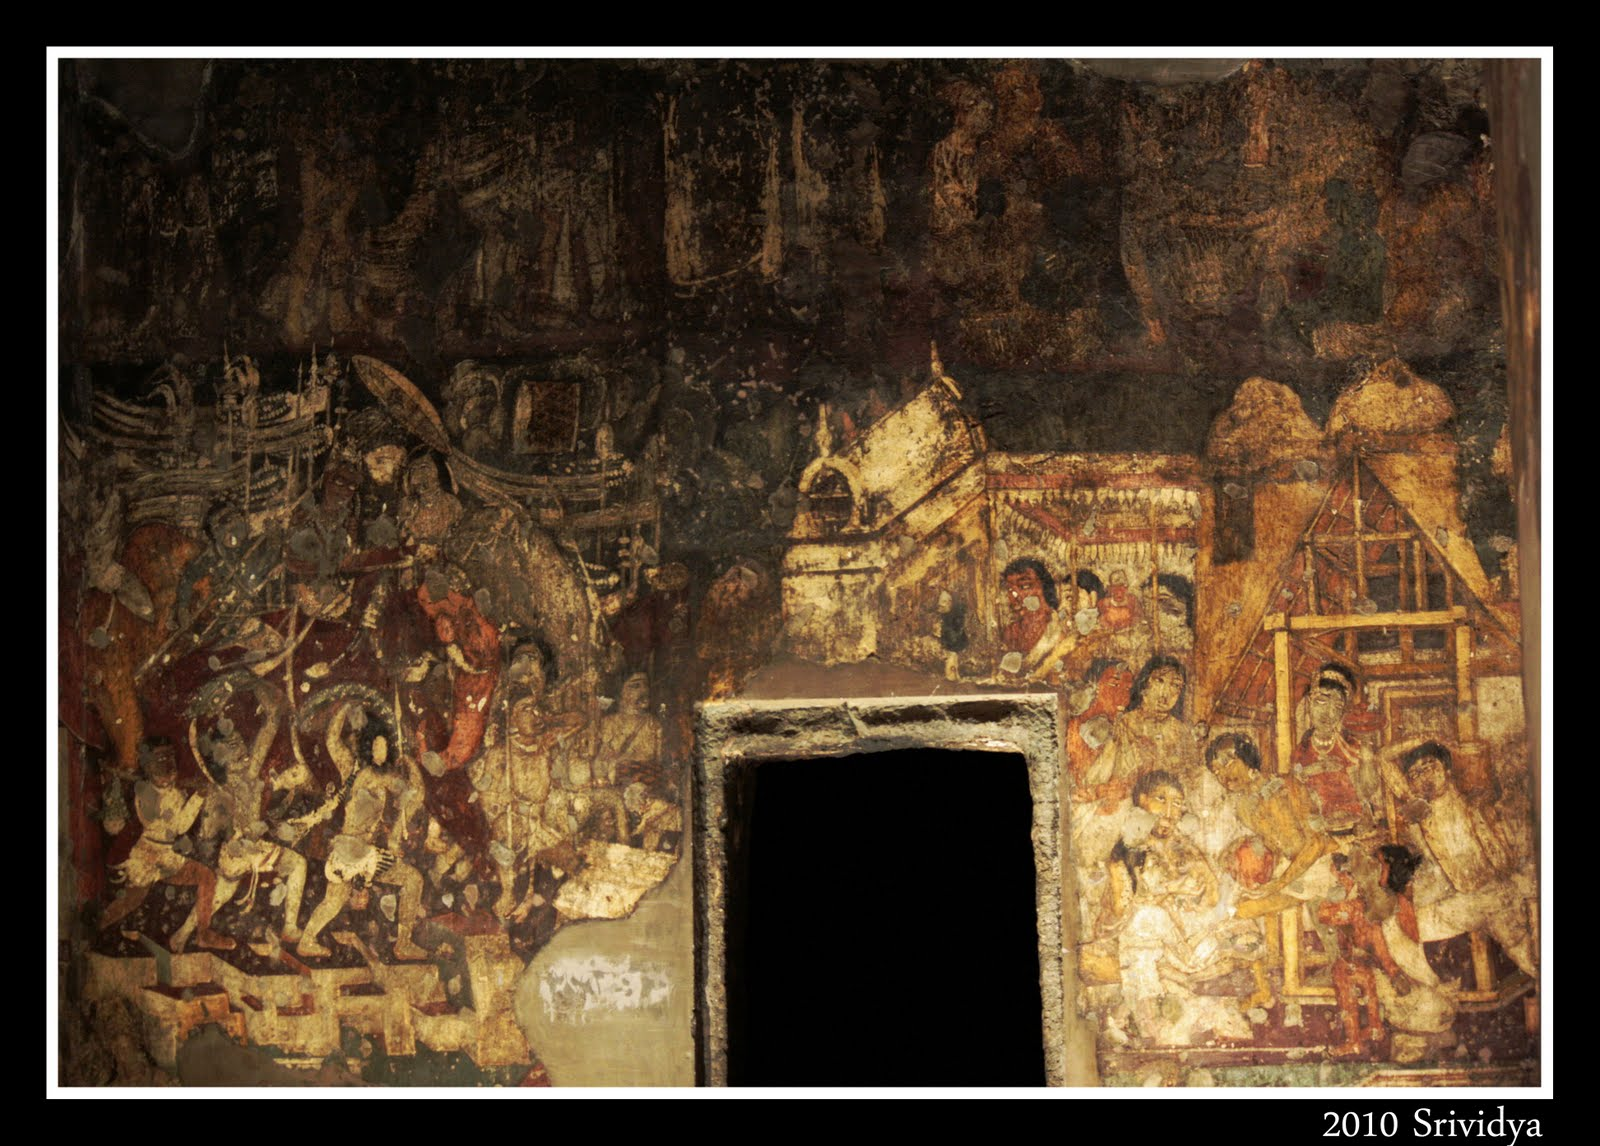 ajanta paintings The paintings and sculptures of ajanta, considered masterpieces of buddhist religious art, have had a considerable artistic influence source.